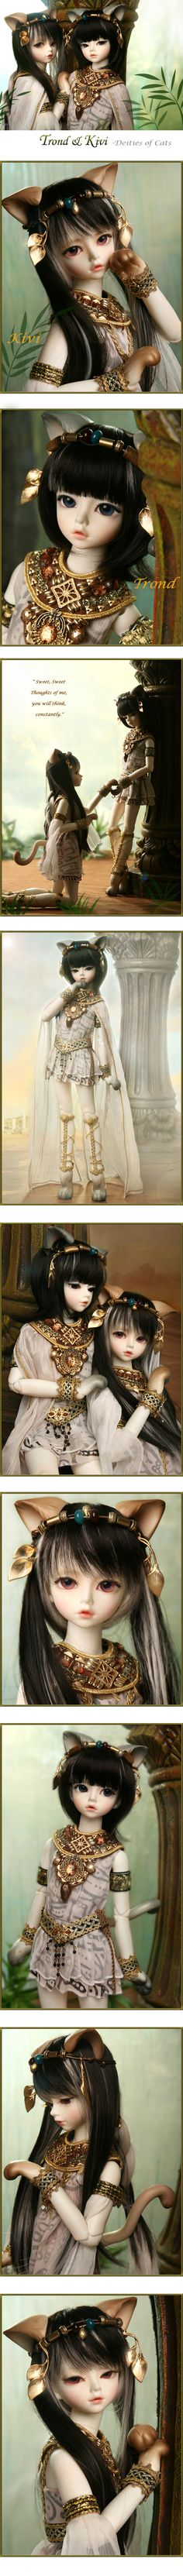 Trond & Kivi, Deities of Cats - Legend of the Doll